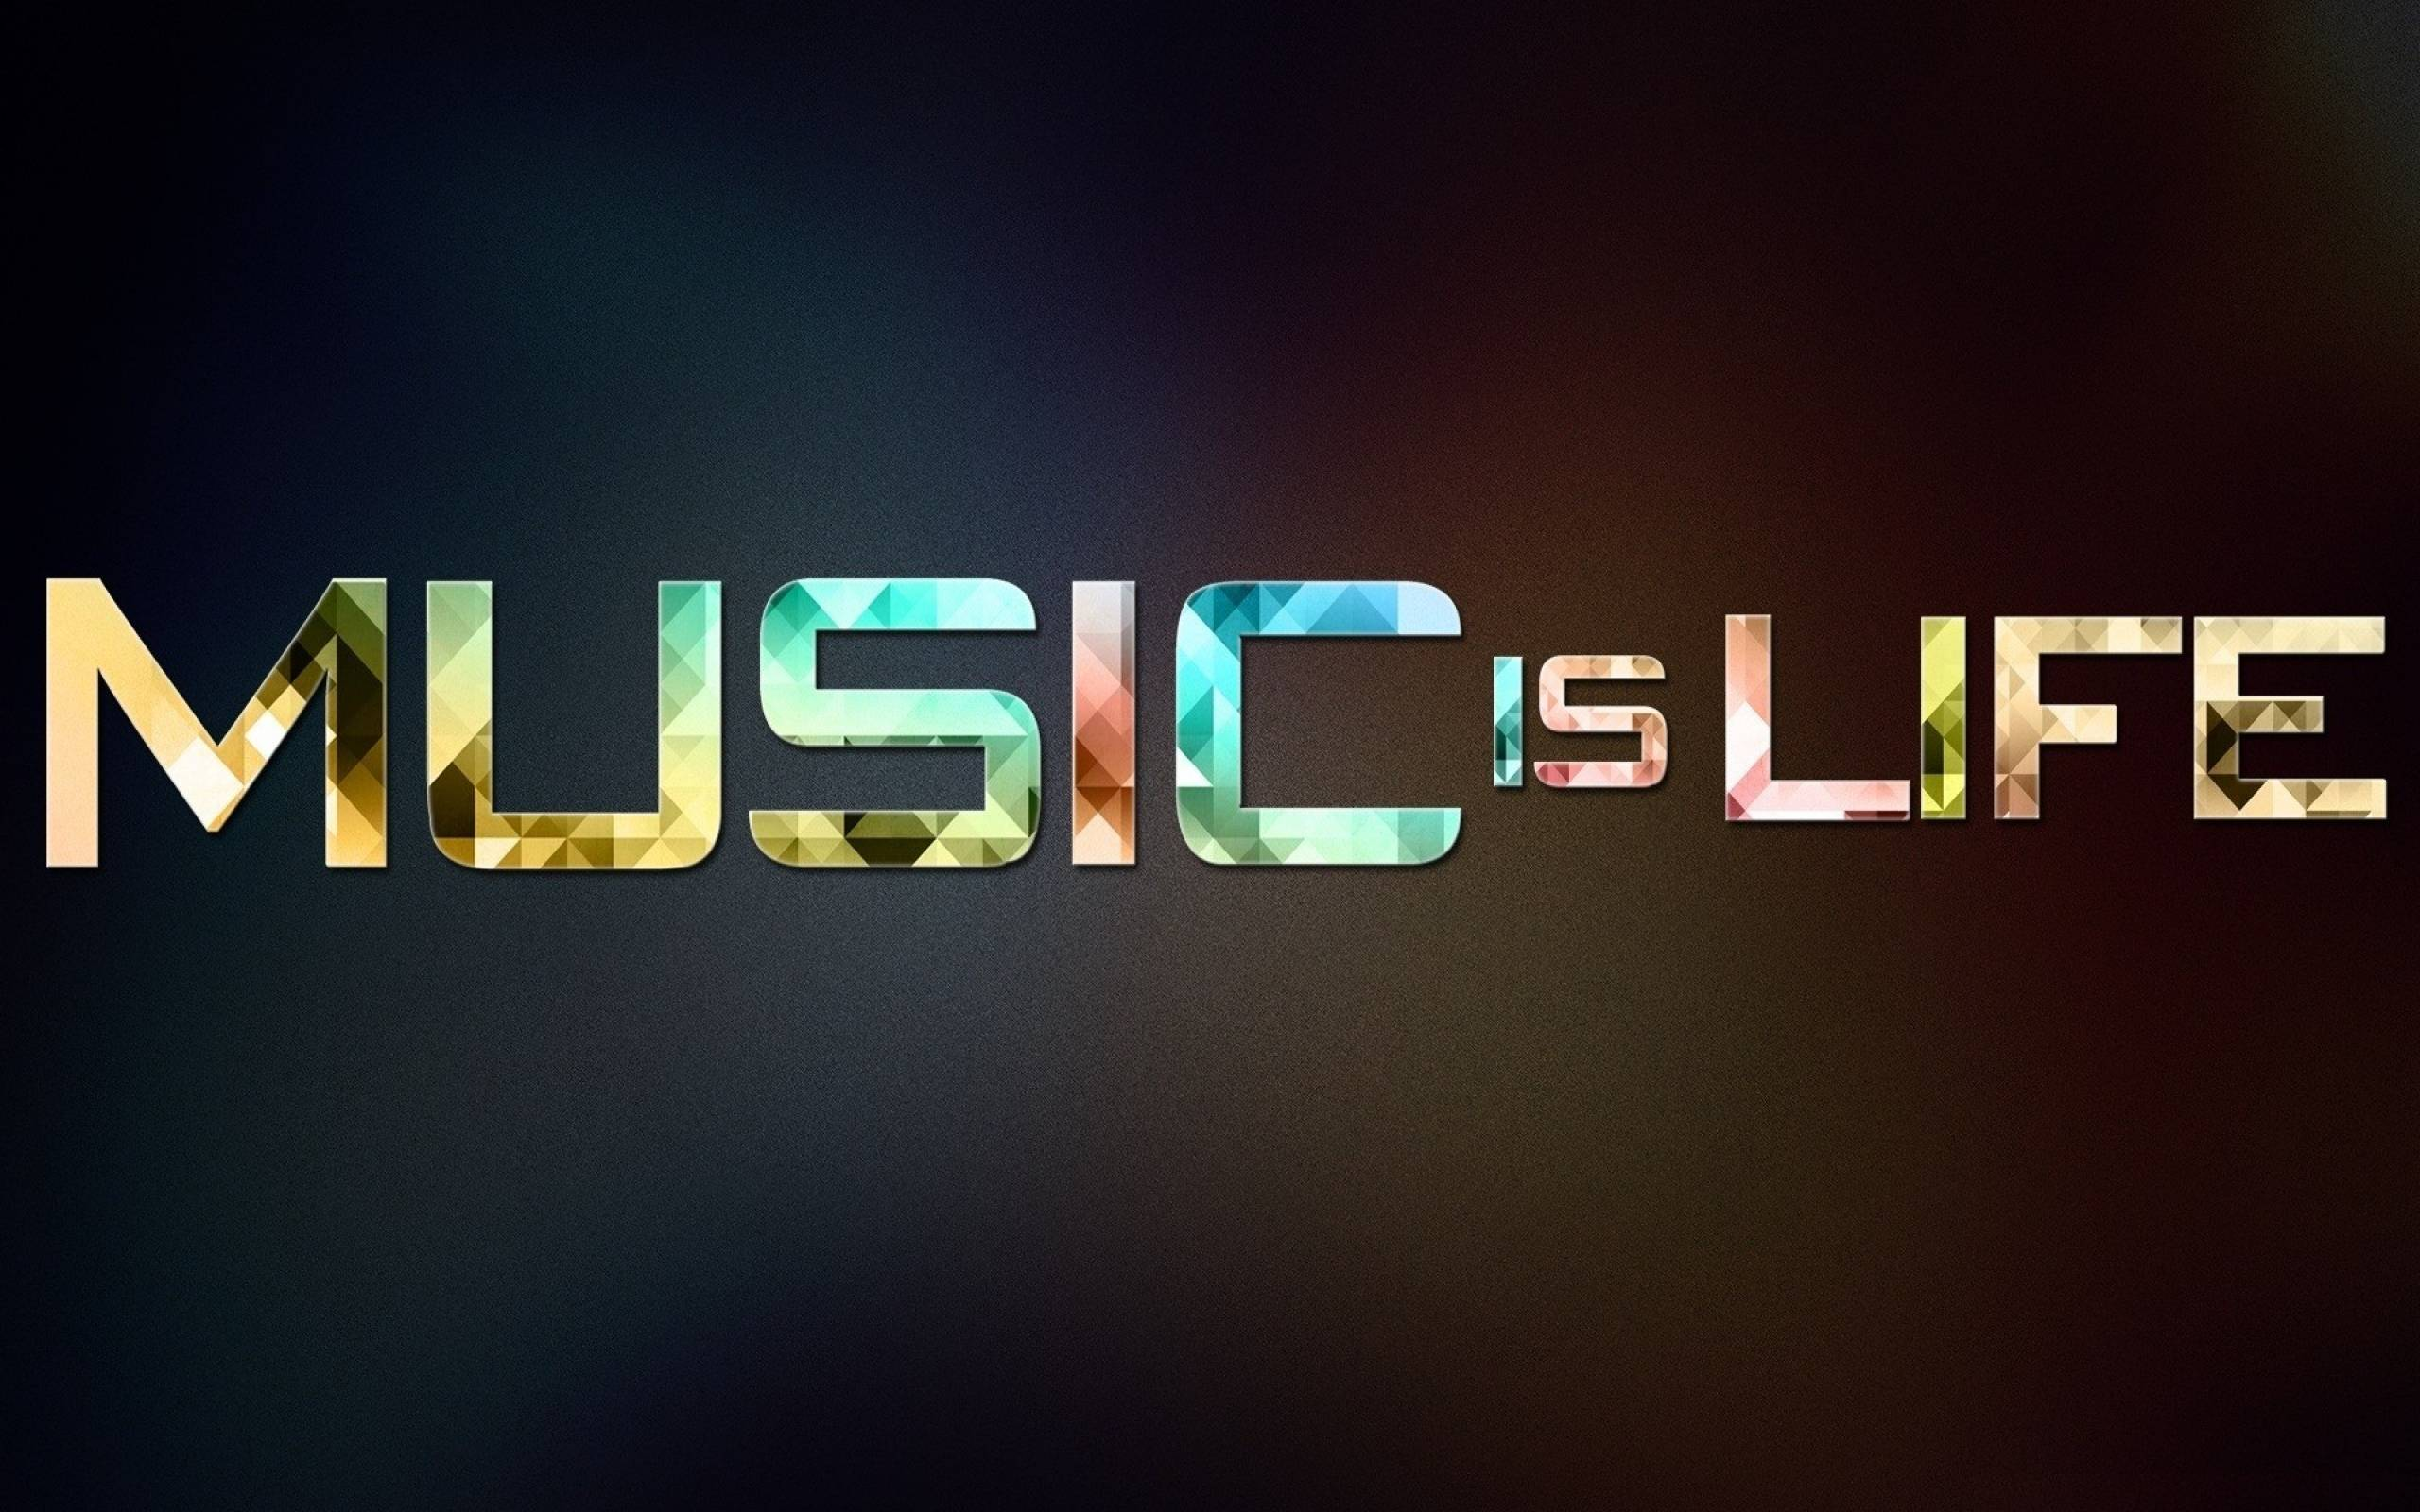 Music is my life wallpapers wallpaper cave for Top wallpaper brands